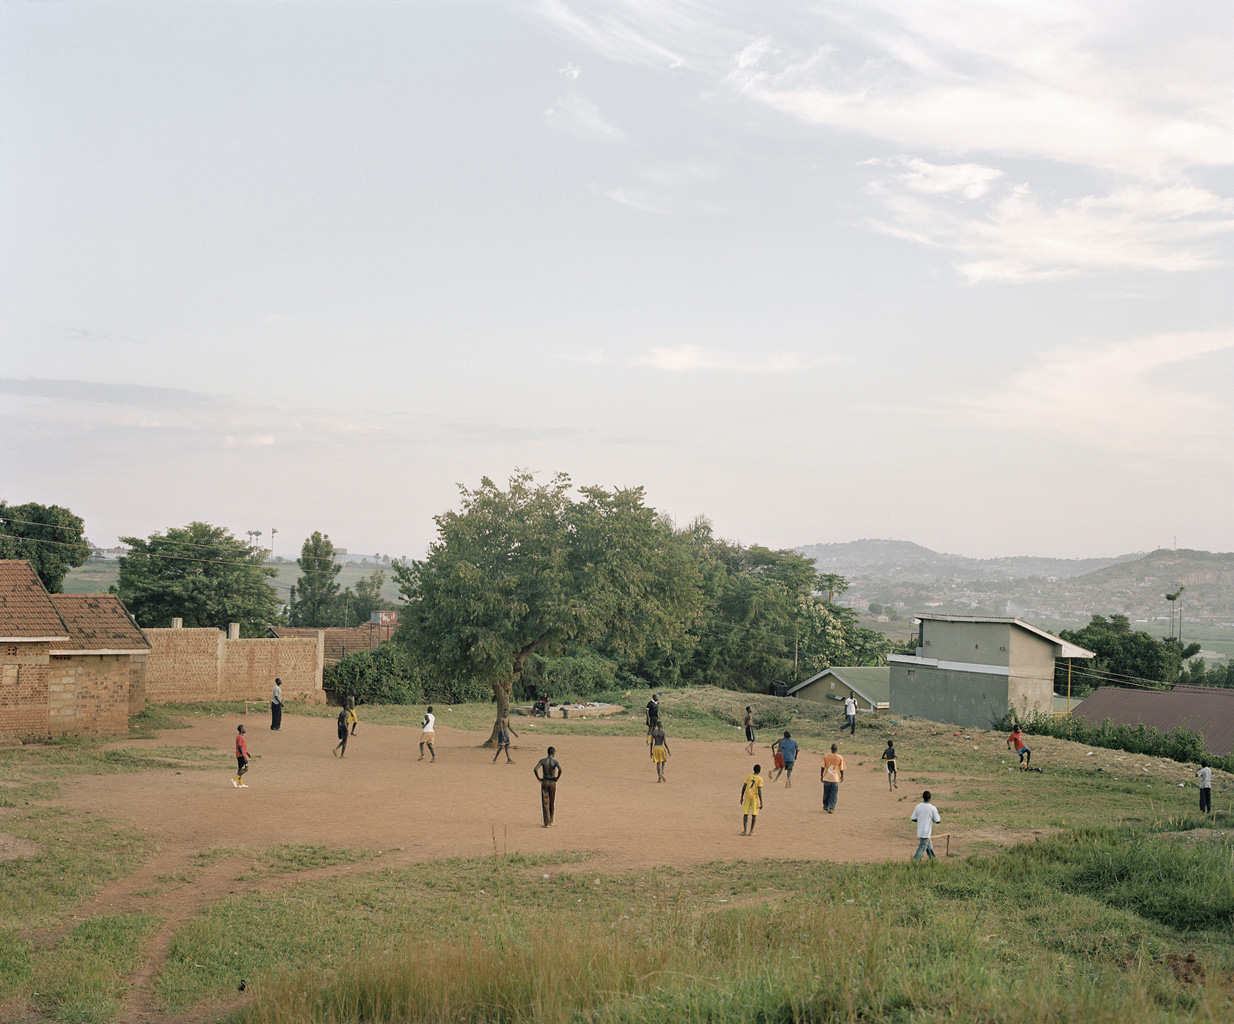 Kitintale - Soccer on Mutongo Hill